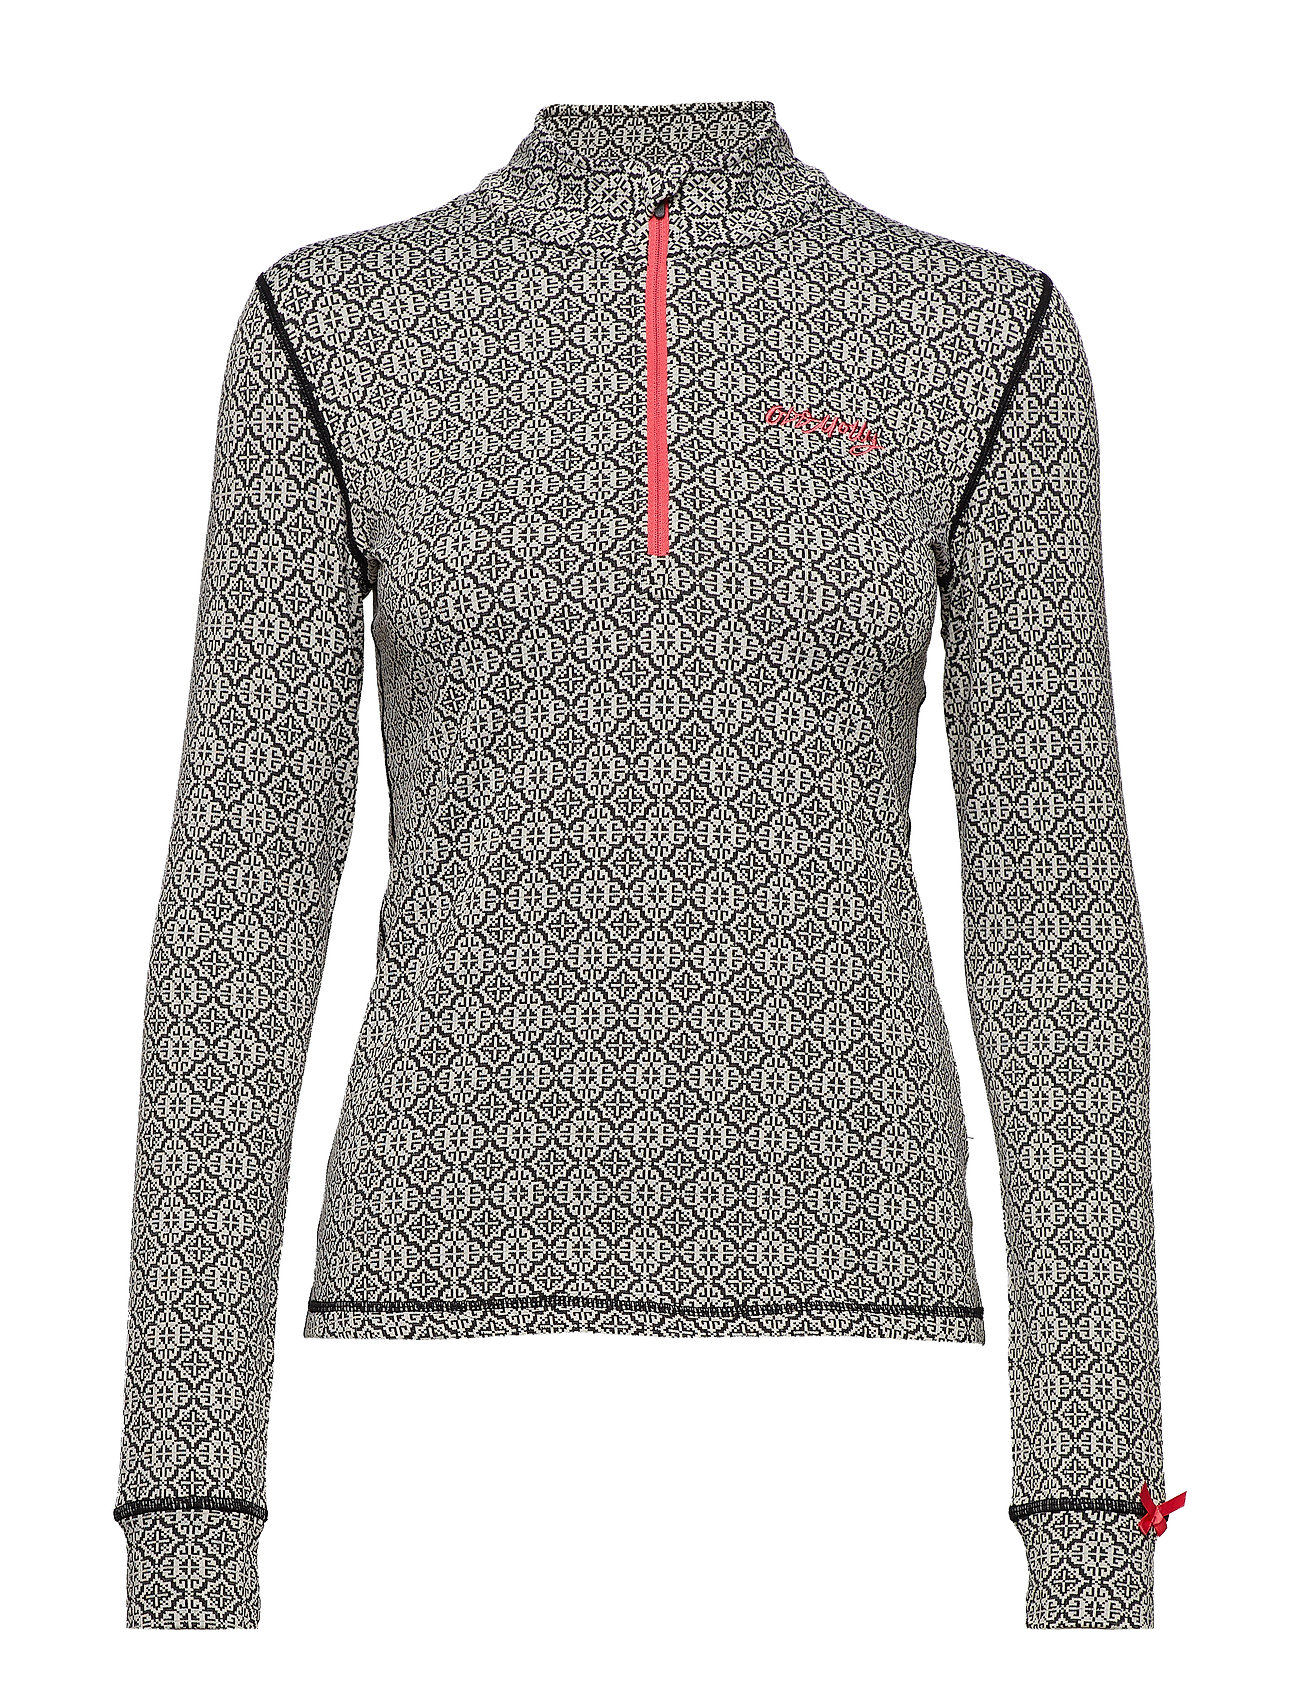 ODD MOLLY ACTIVE WEAR spin to win base layer top